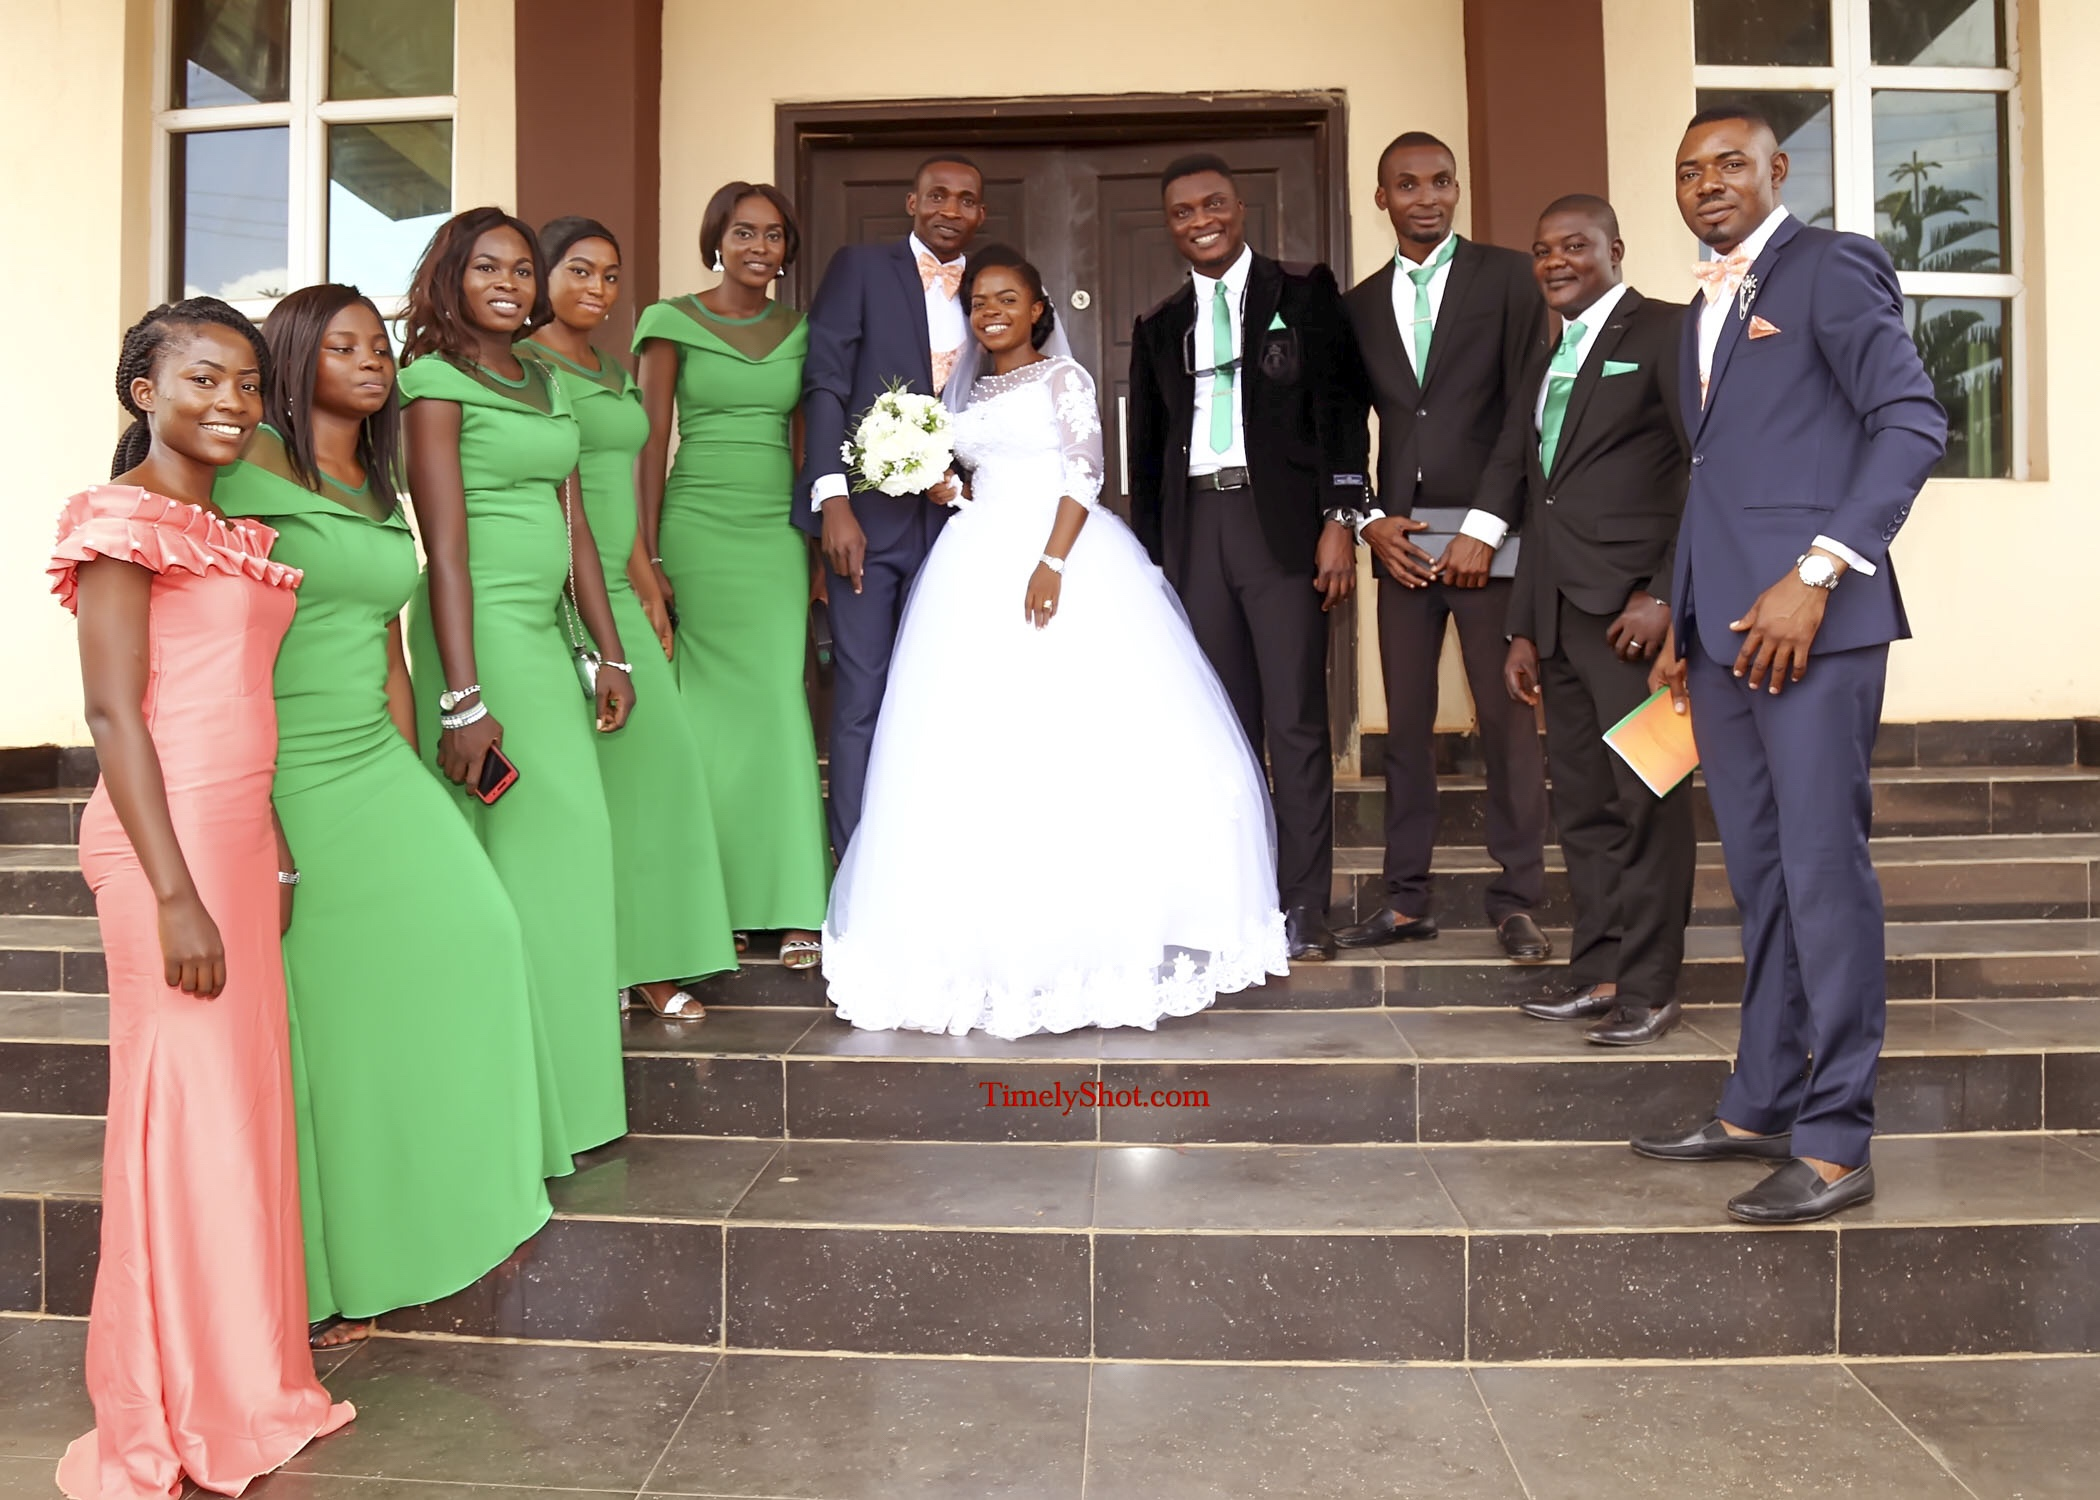 grooms men and brides maid and couple